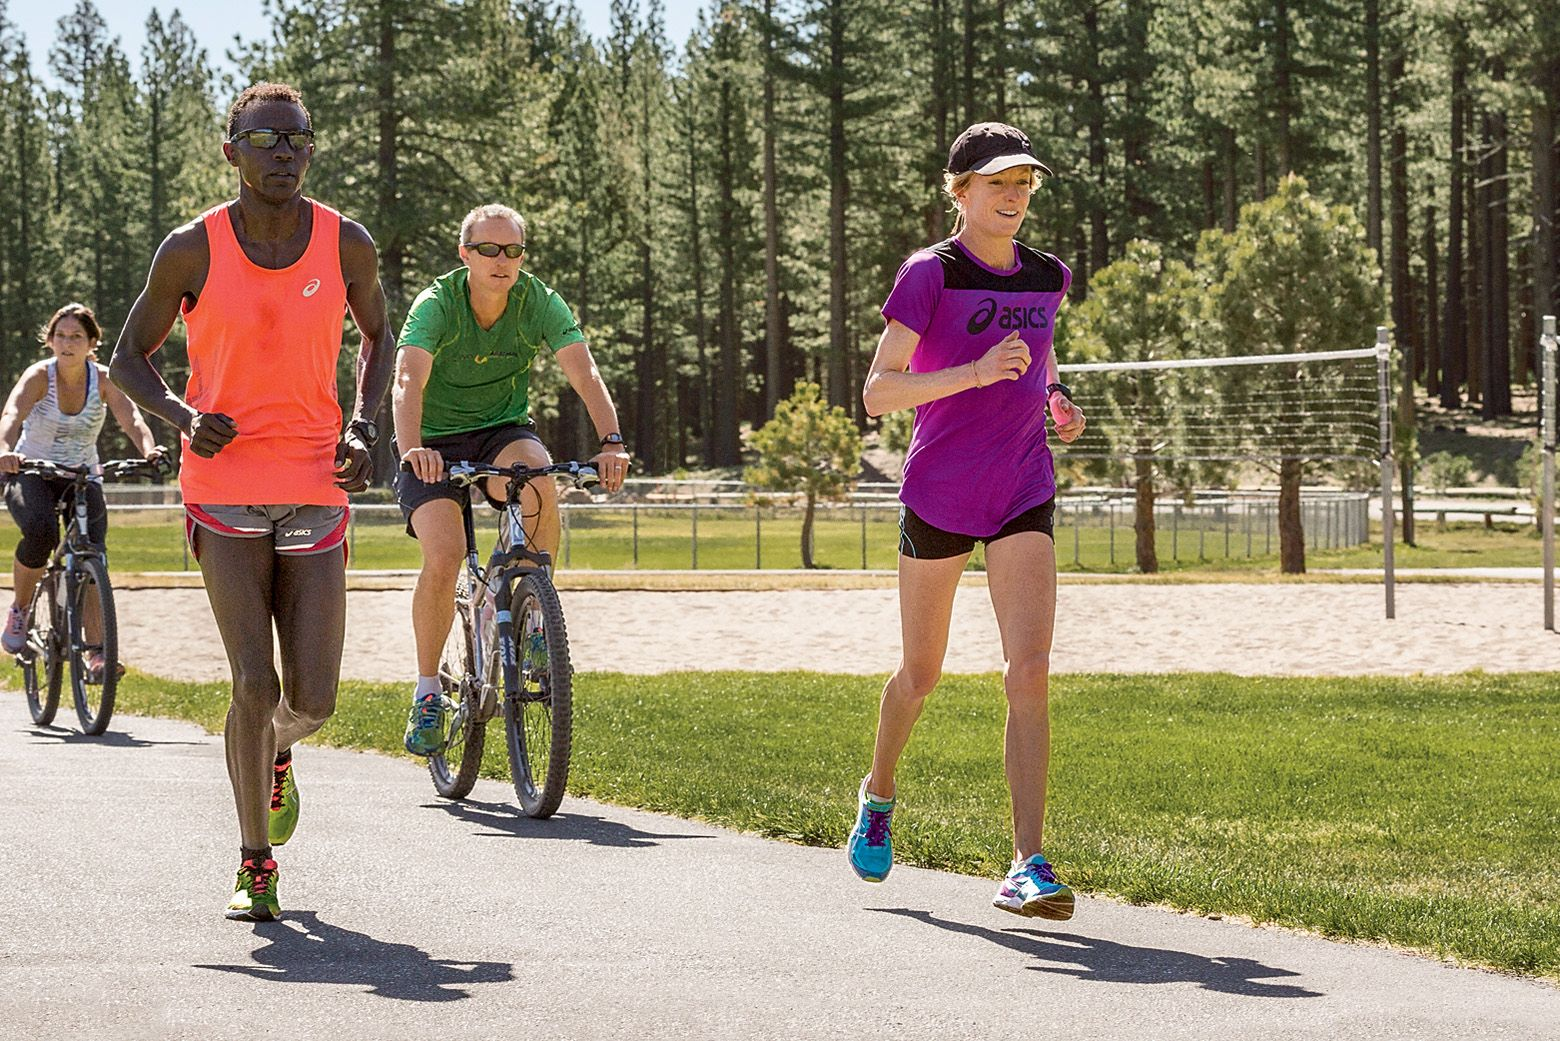 5 Things No One Tells You About Running as You Get Older